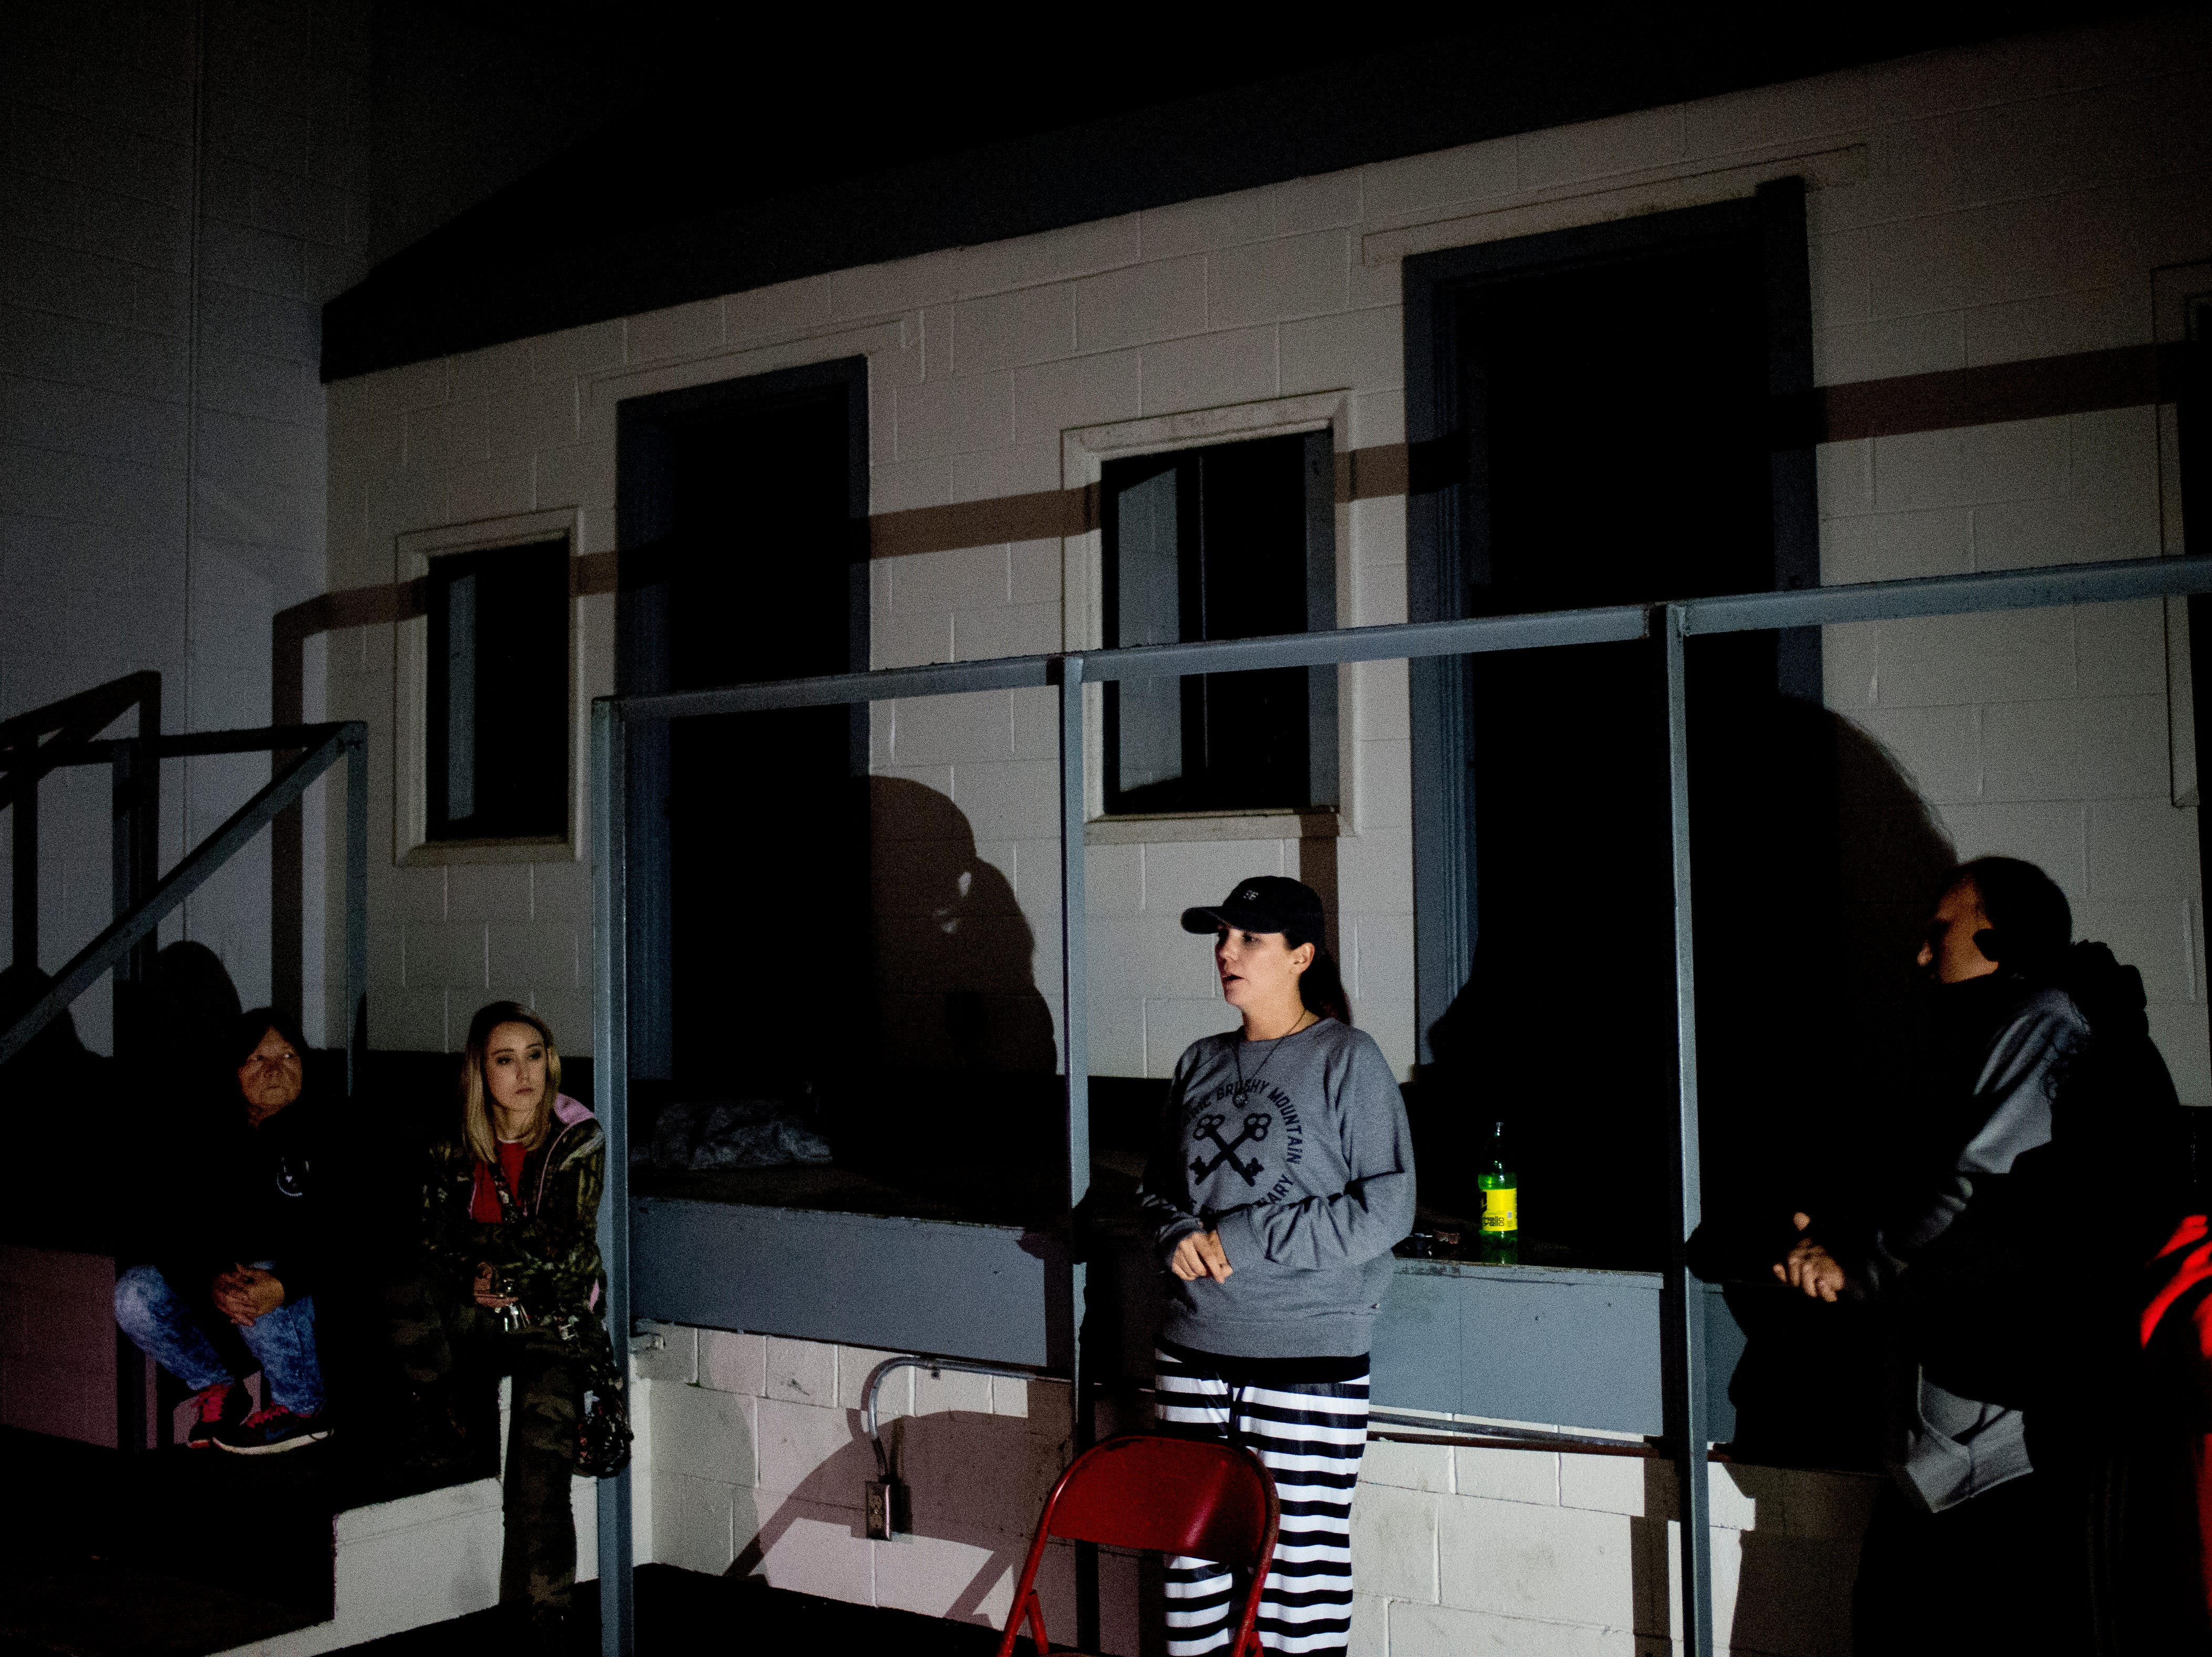 The tour group gathers in the auditorium and hospital during a paranormal flashlight tour of Brushy Mountain State Penitentiary in Petros, Tennessee on Tuesday, October 16, 2018.